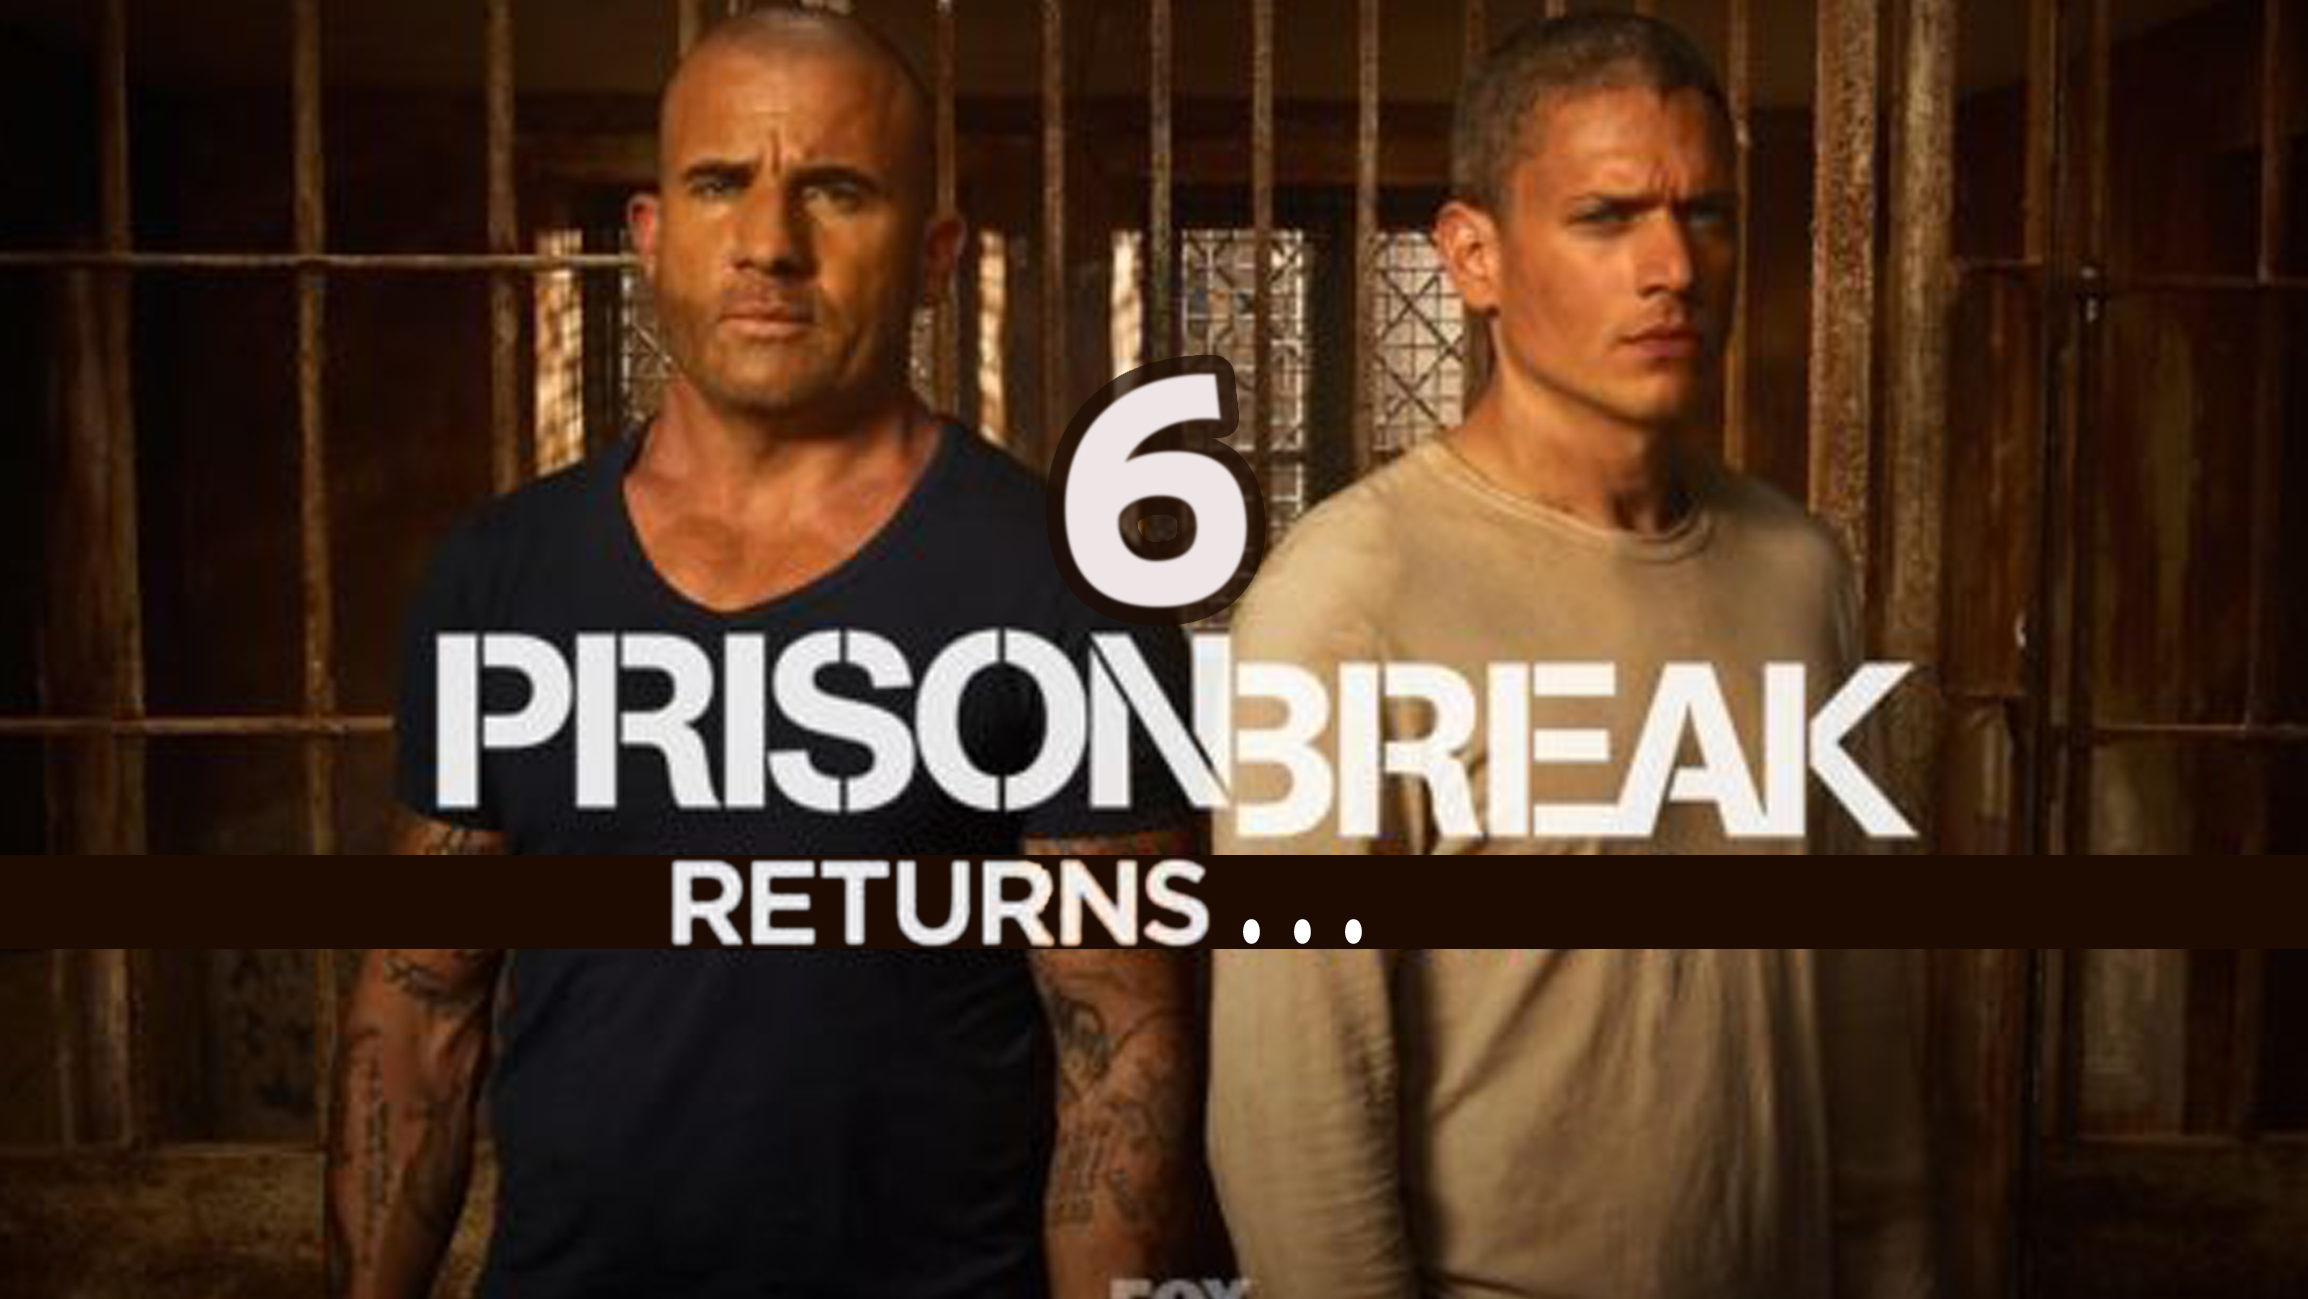 Prison Break season 6 returns